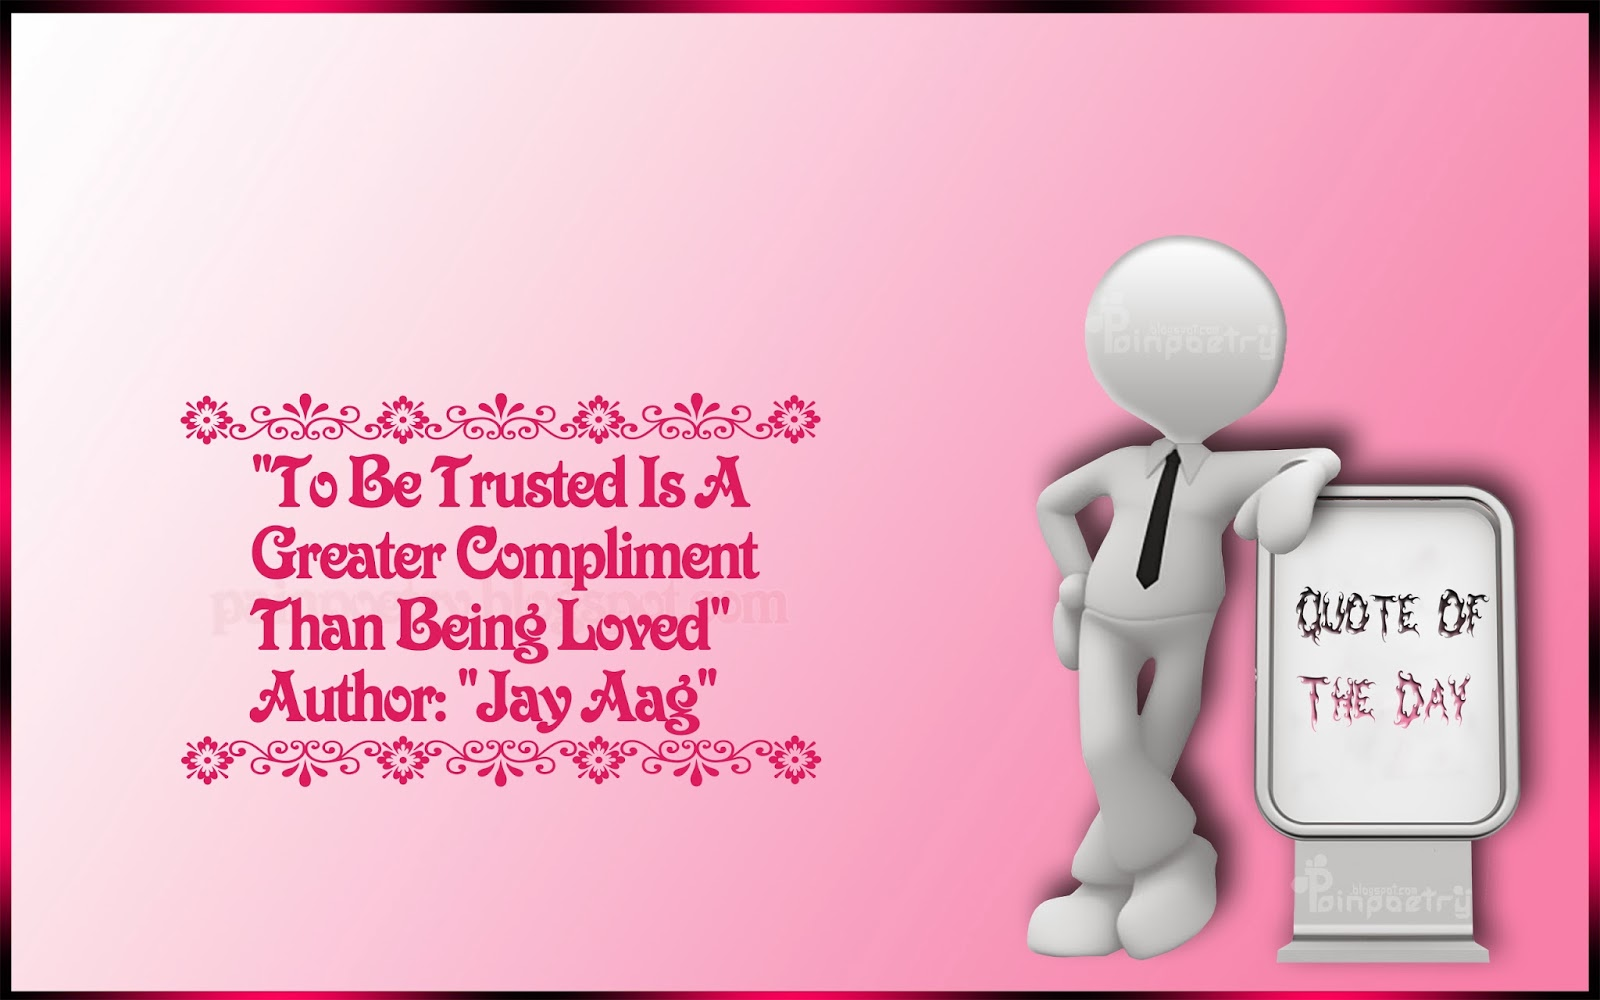 Quotes-Of-The-Trust-Image-Photo-Wallpaper-Wide